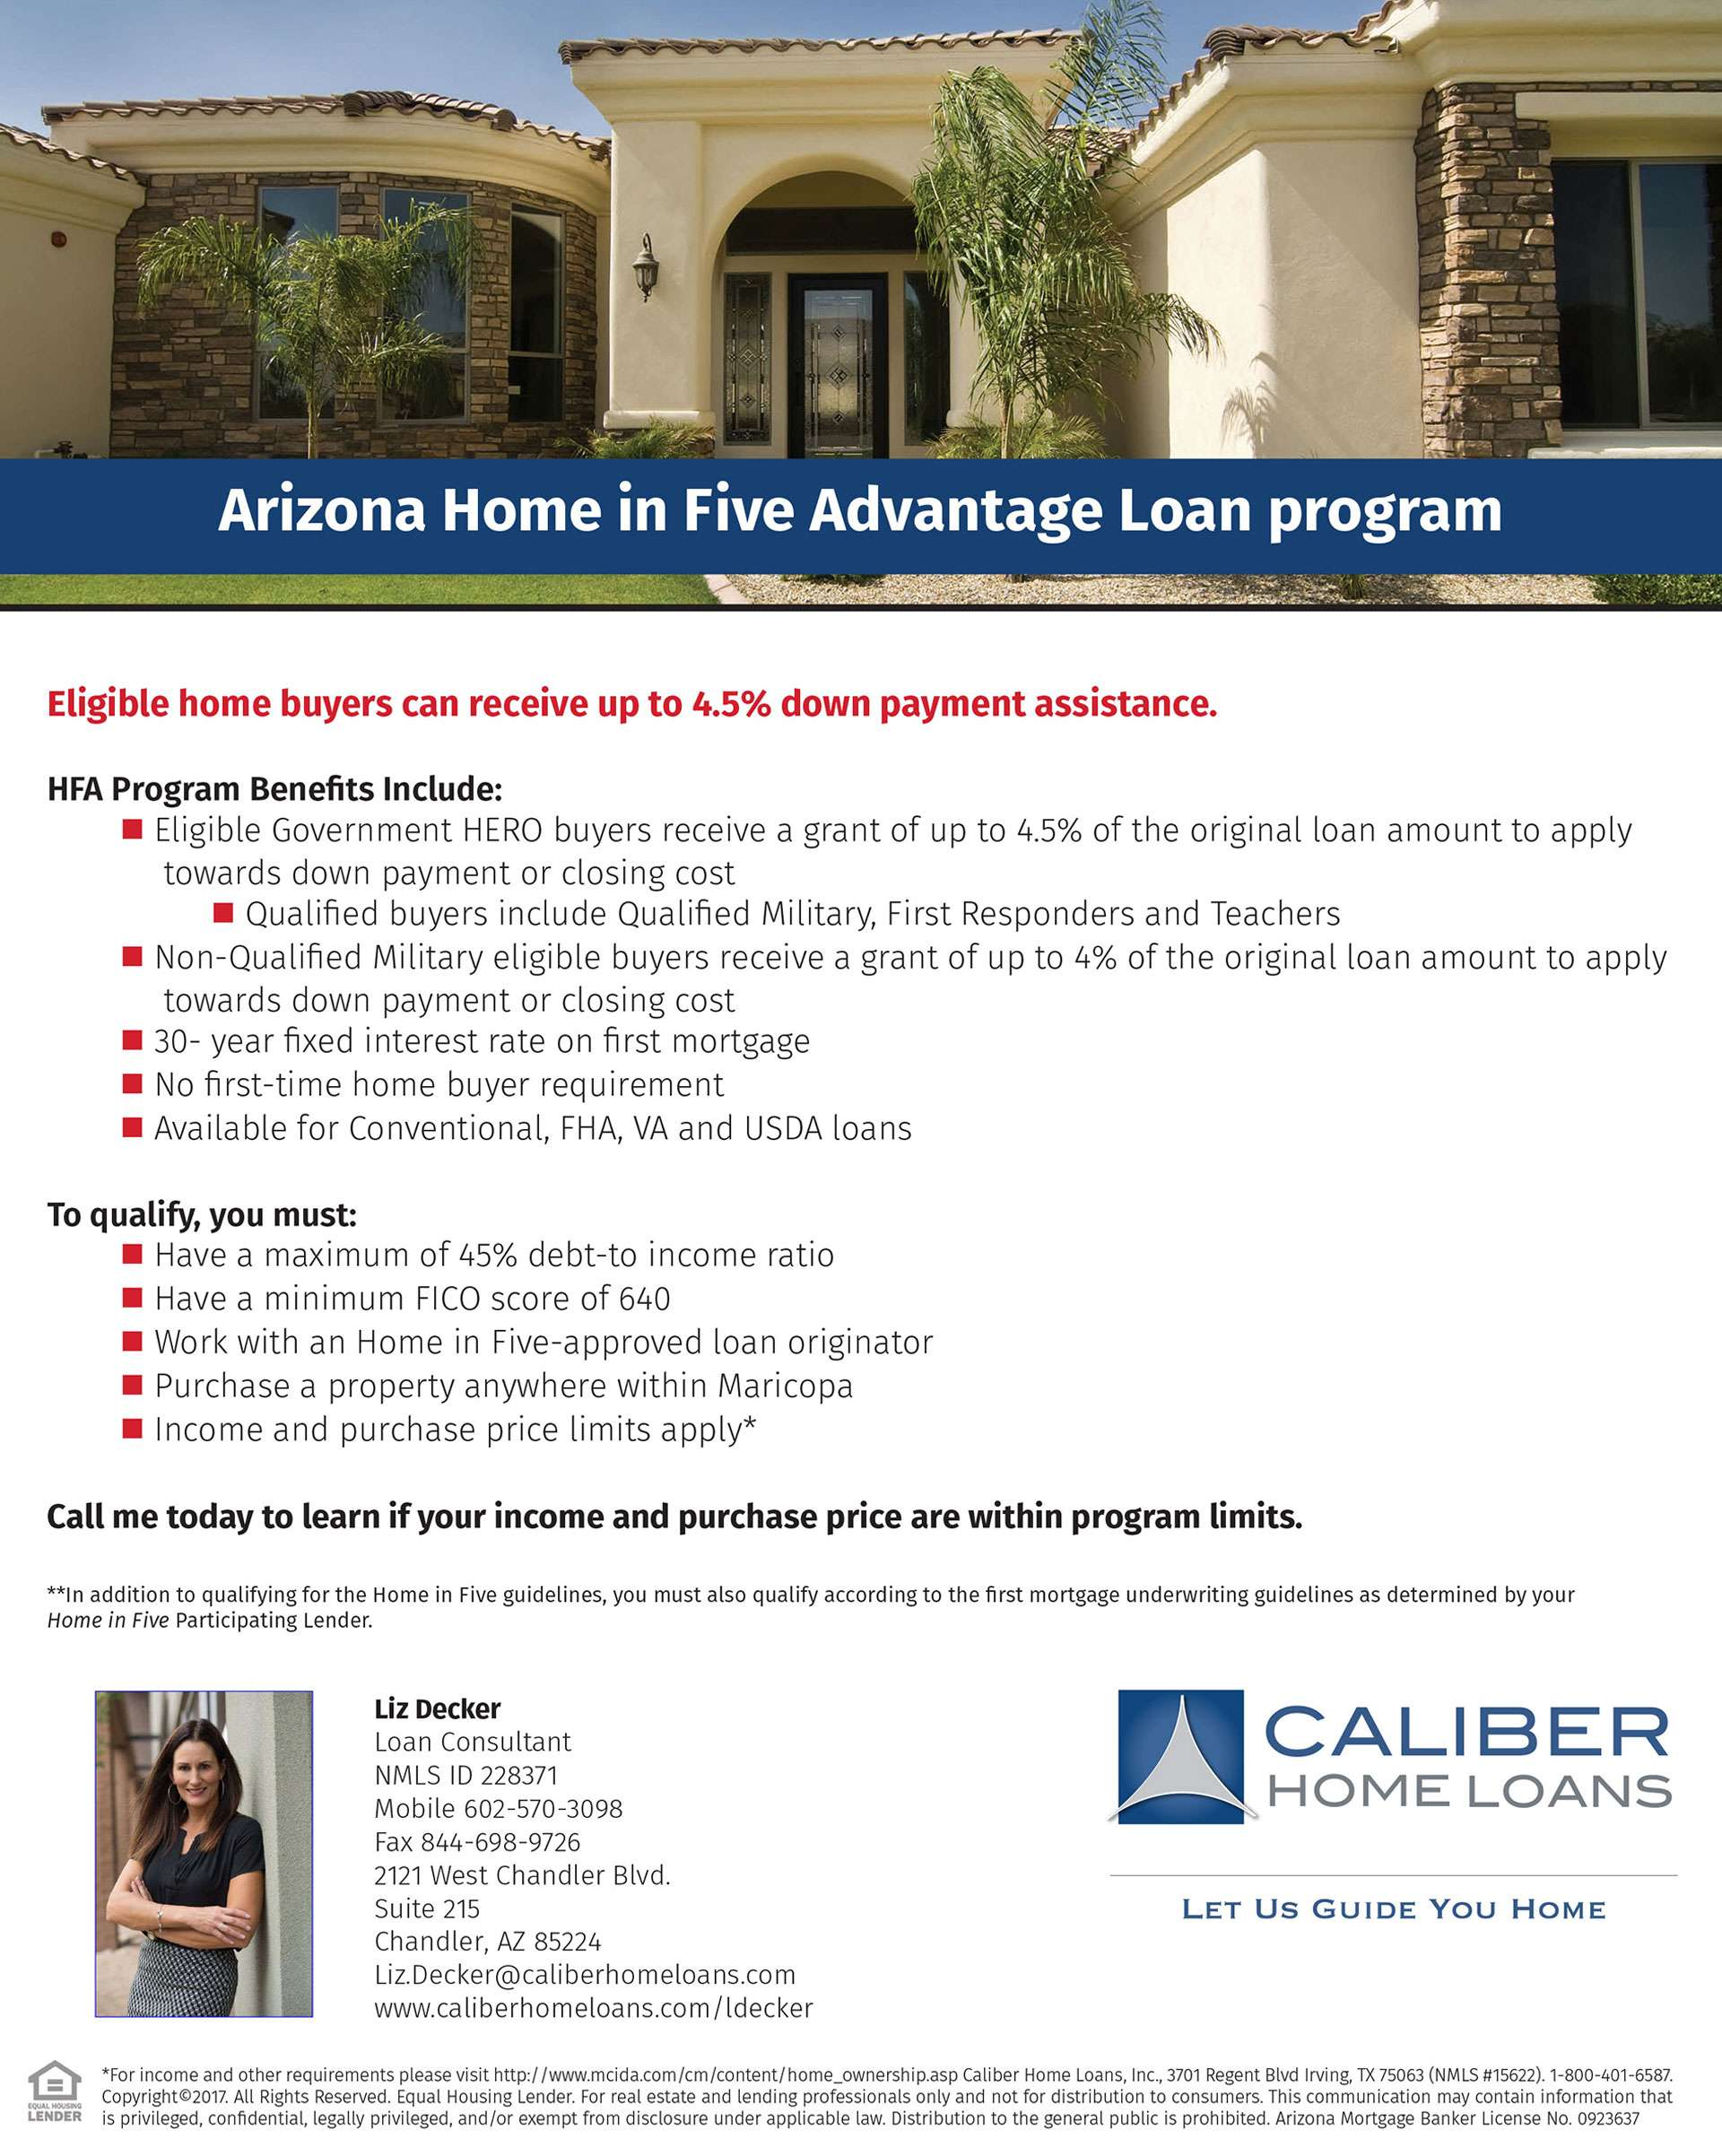 Arizona Home in Five Advantage Loan Program